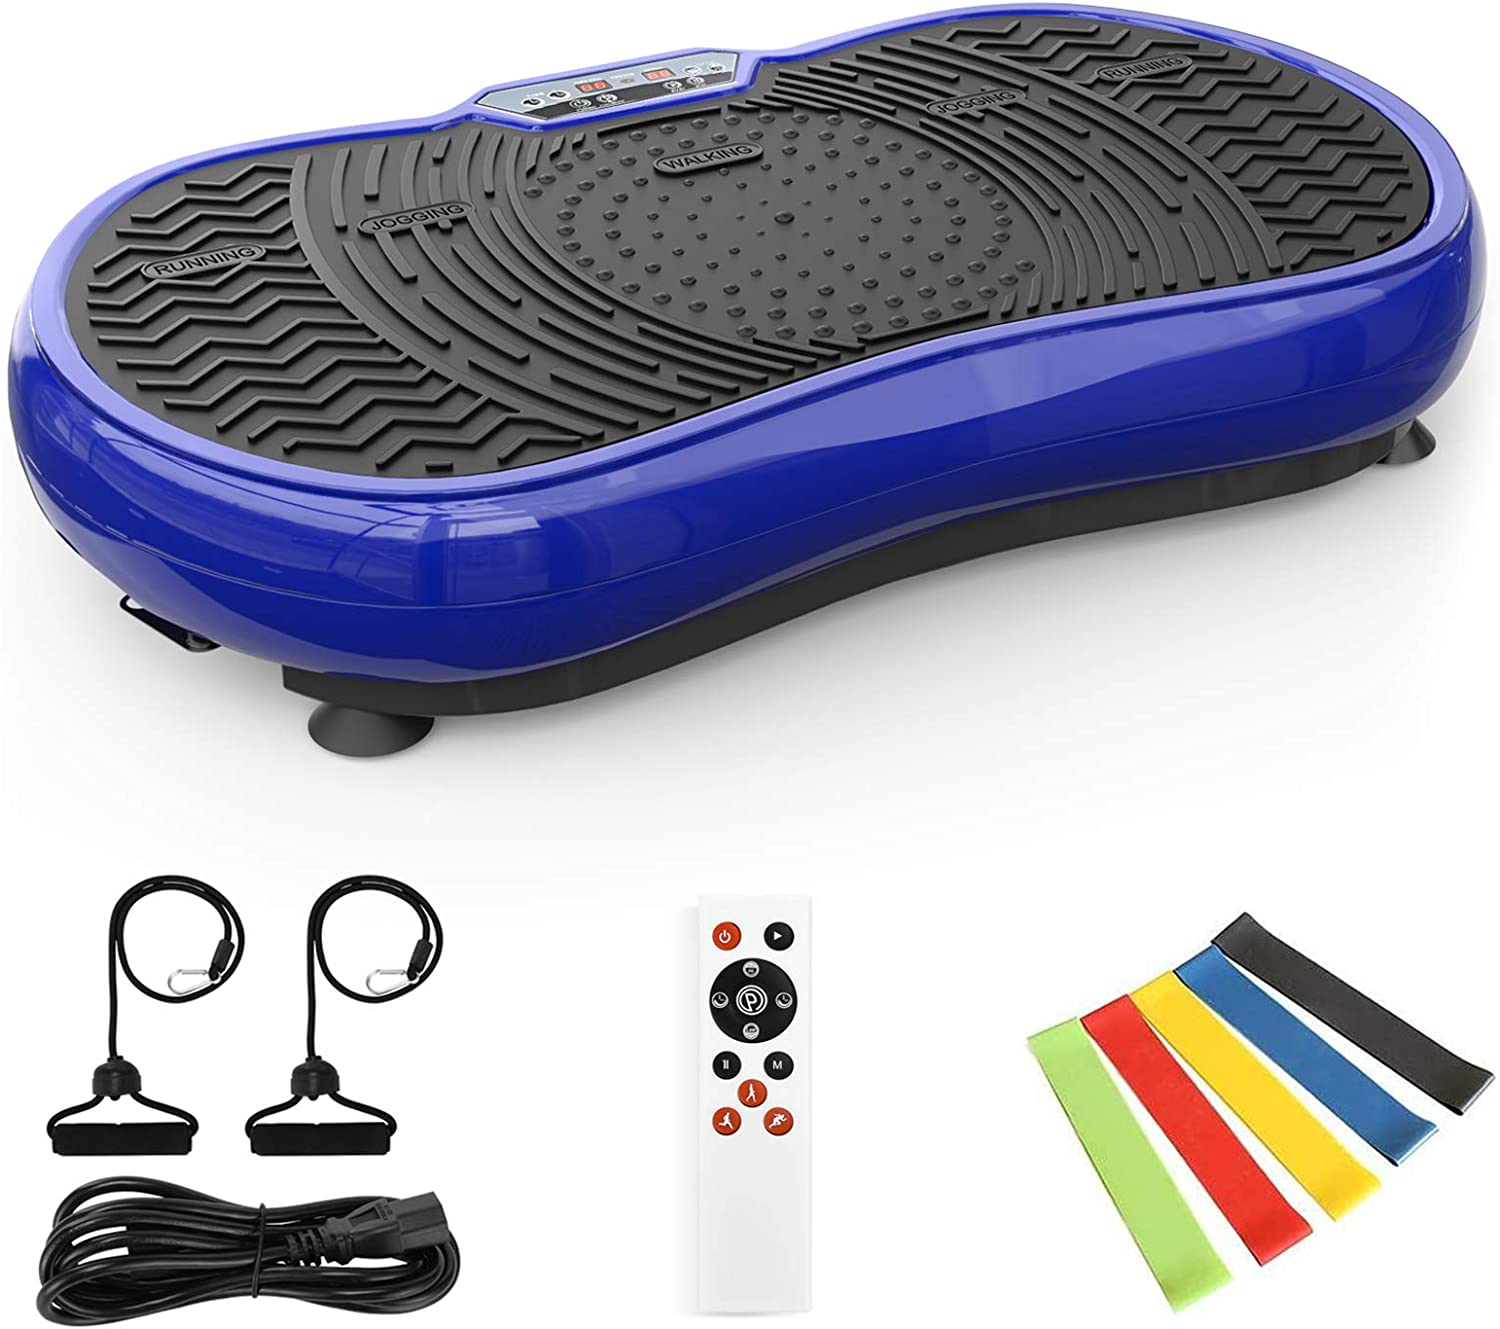 TECHMOO Fitness Vibration Power Plate Platform Whole Body Workout Exercise Machine Home Exercise Equipment W/Remote Control & Bands for Home Fitness Losing Weight Max User Weight 320lbs